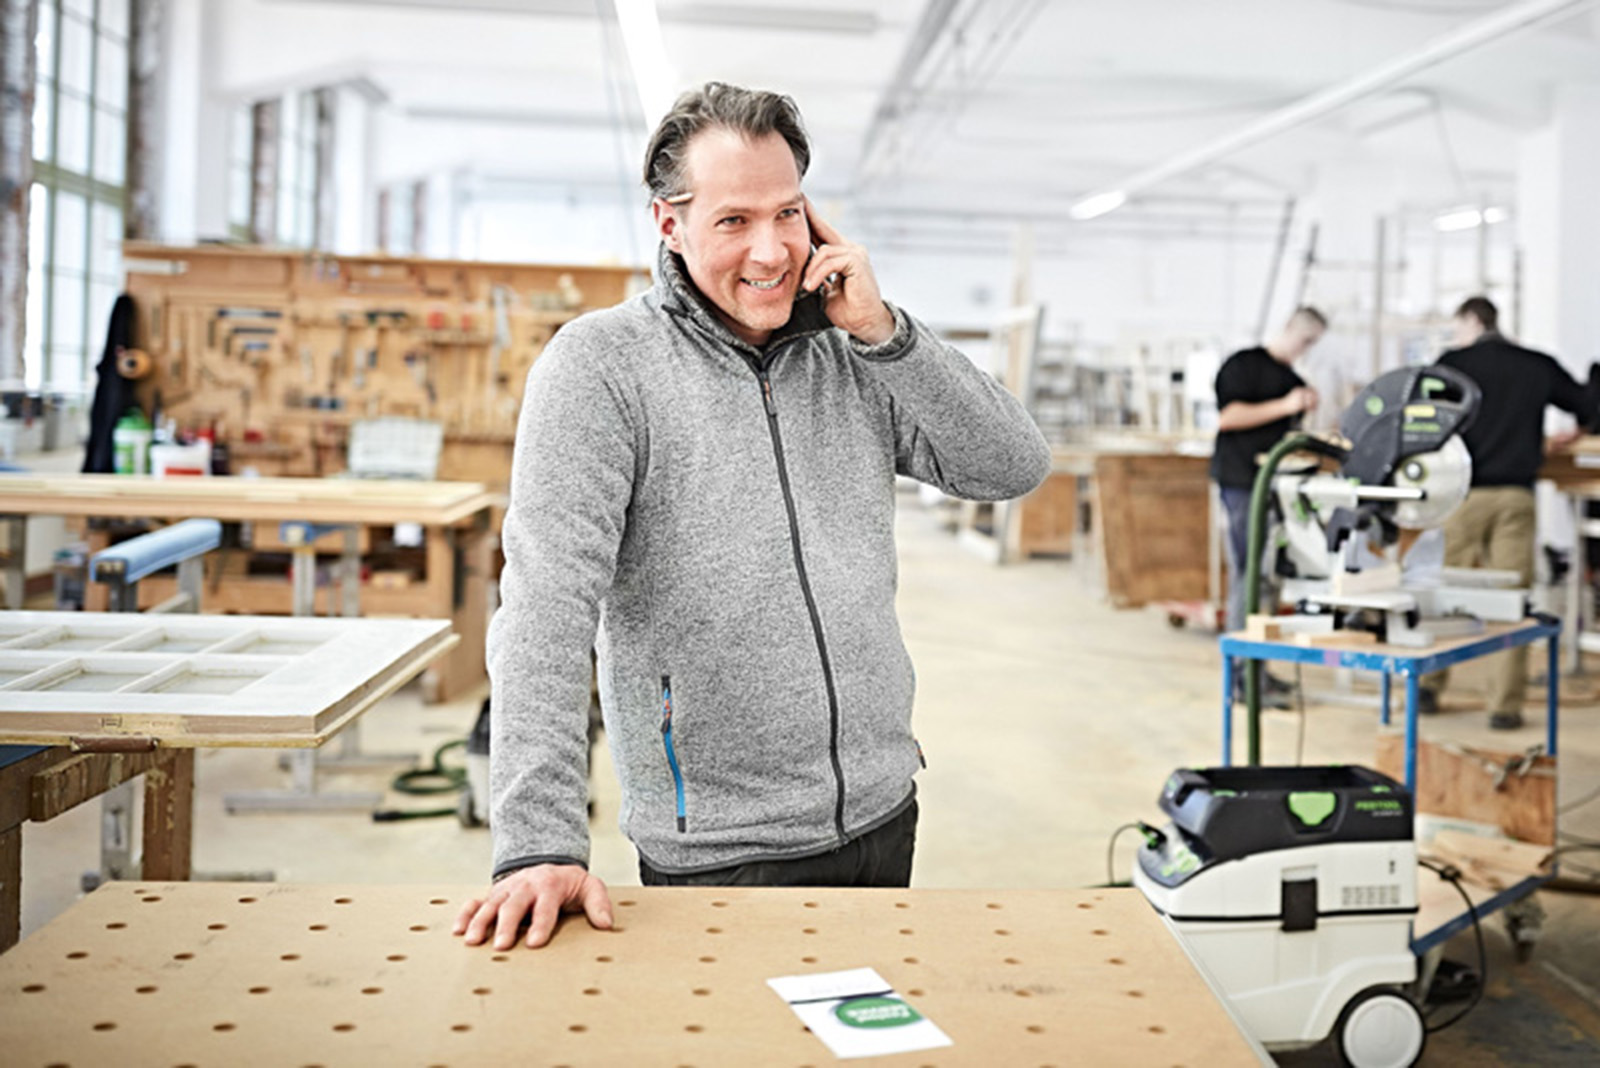 Tool talk with Festool: post-purchase care